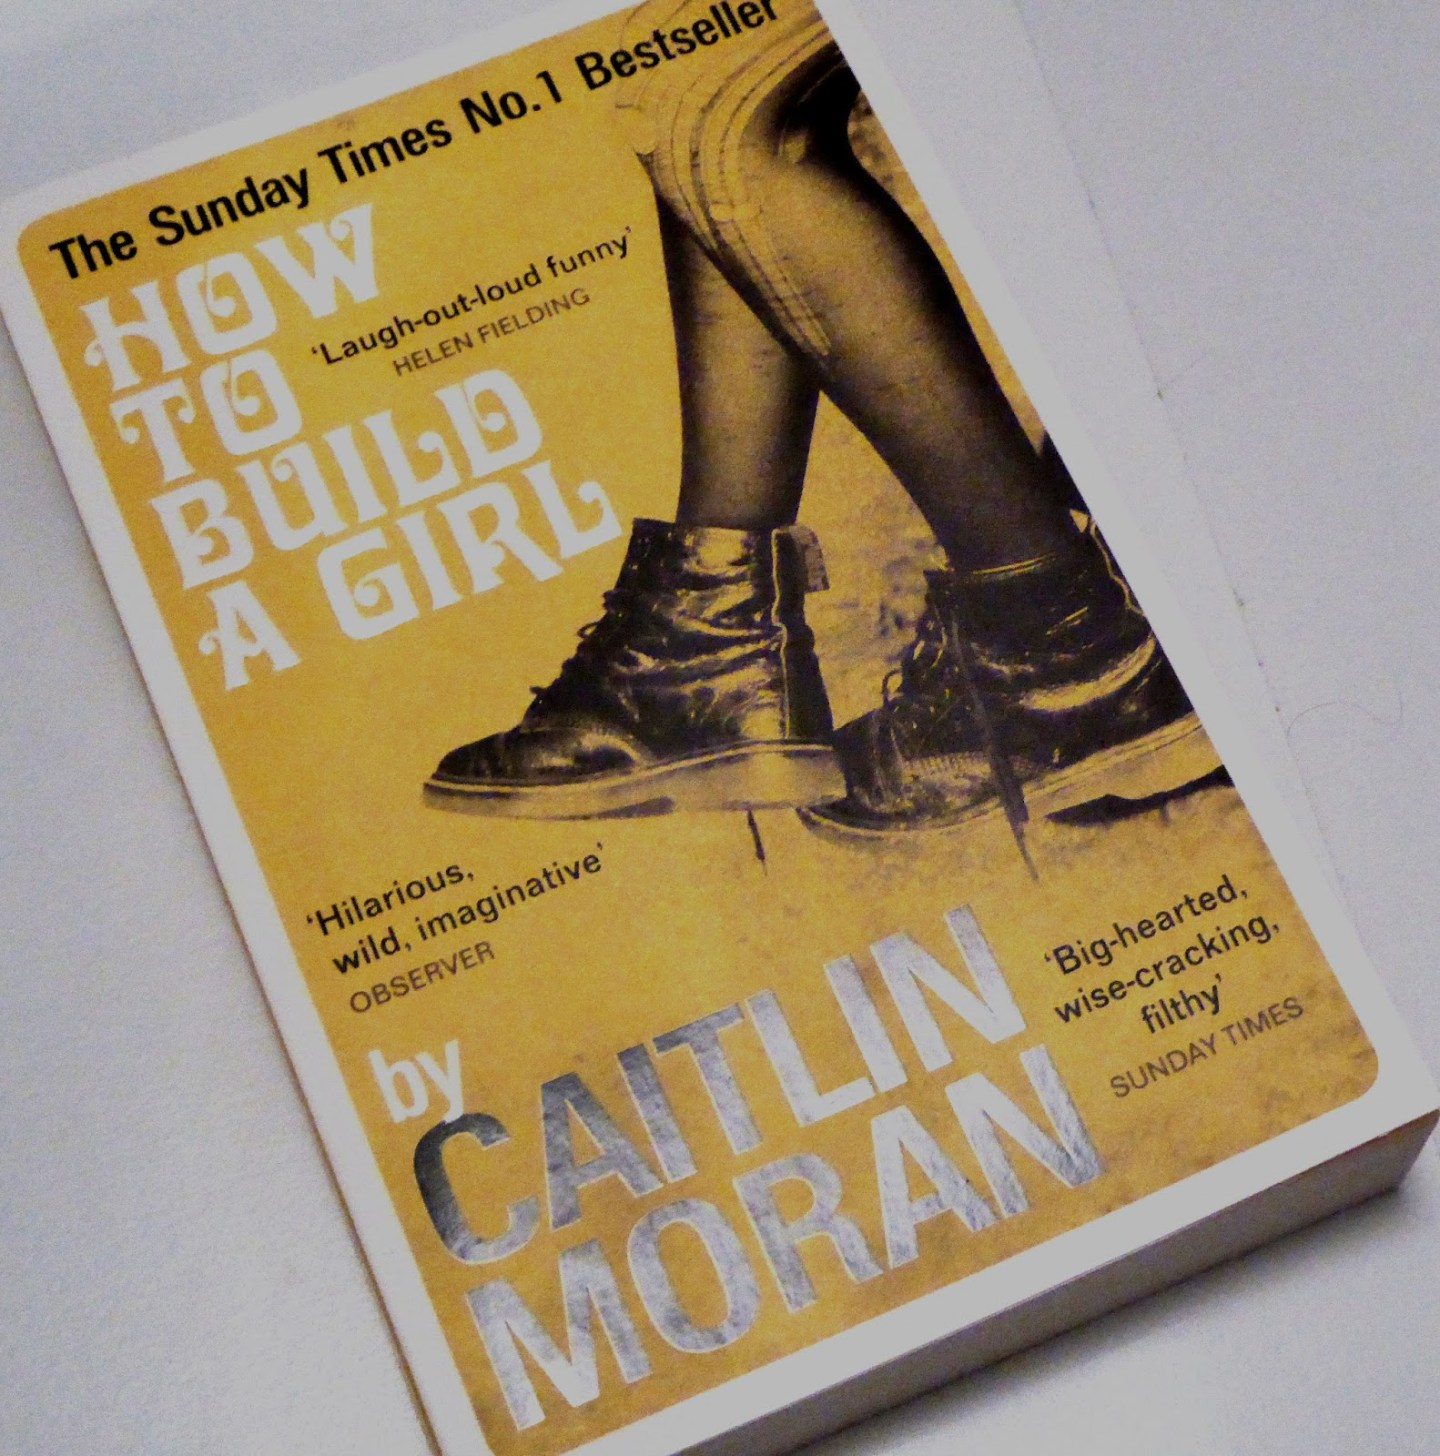 How to Build a Girl by Caitlin Moran | Book Review